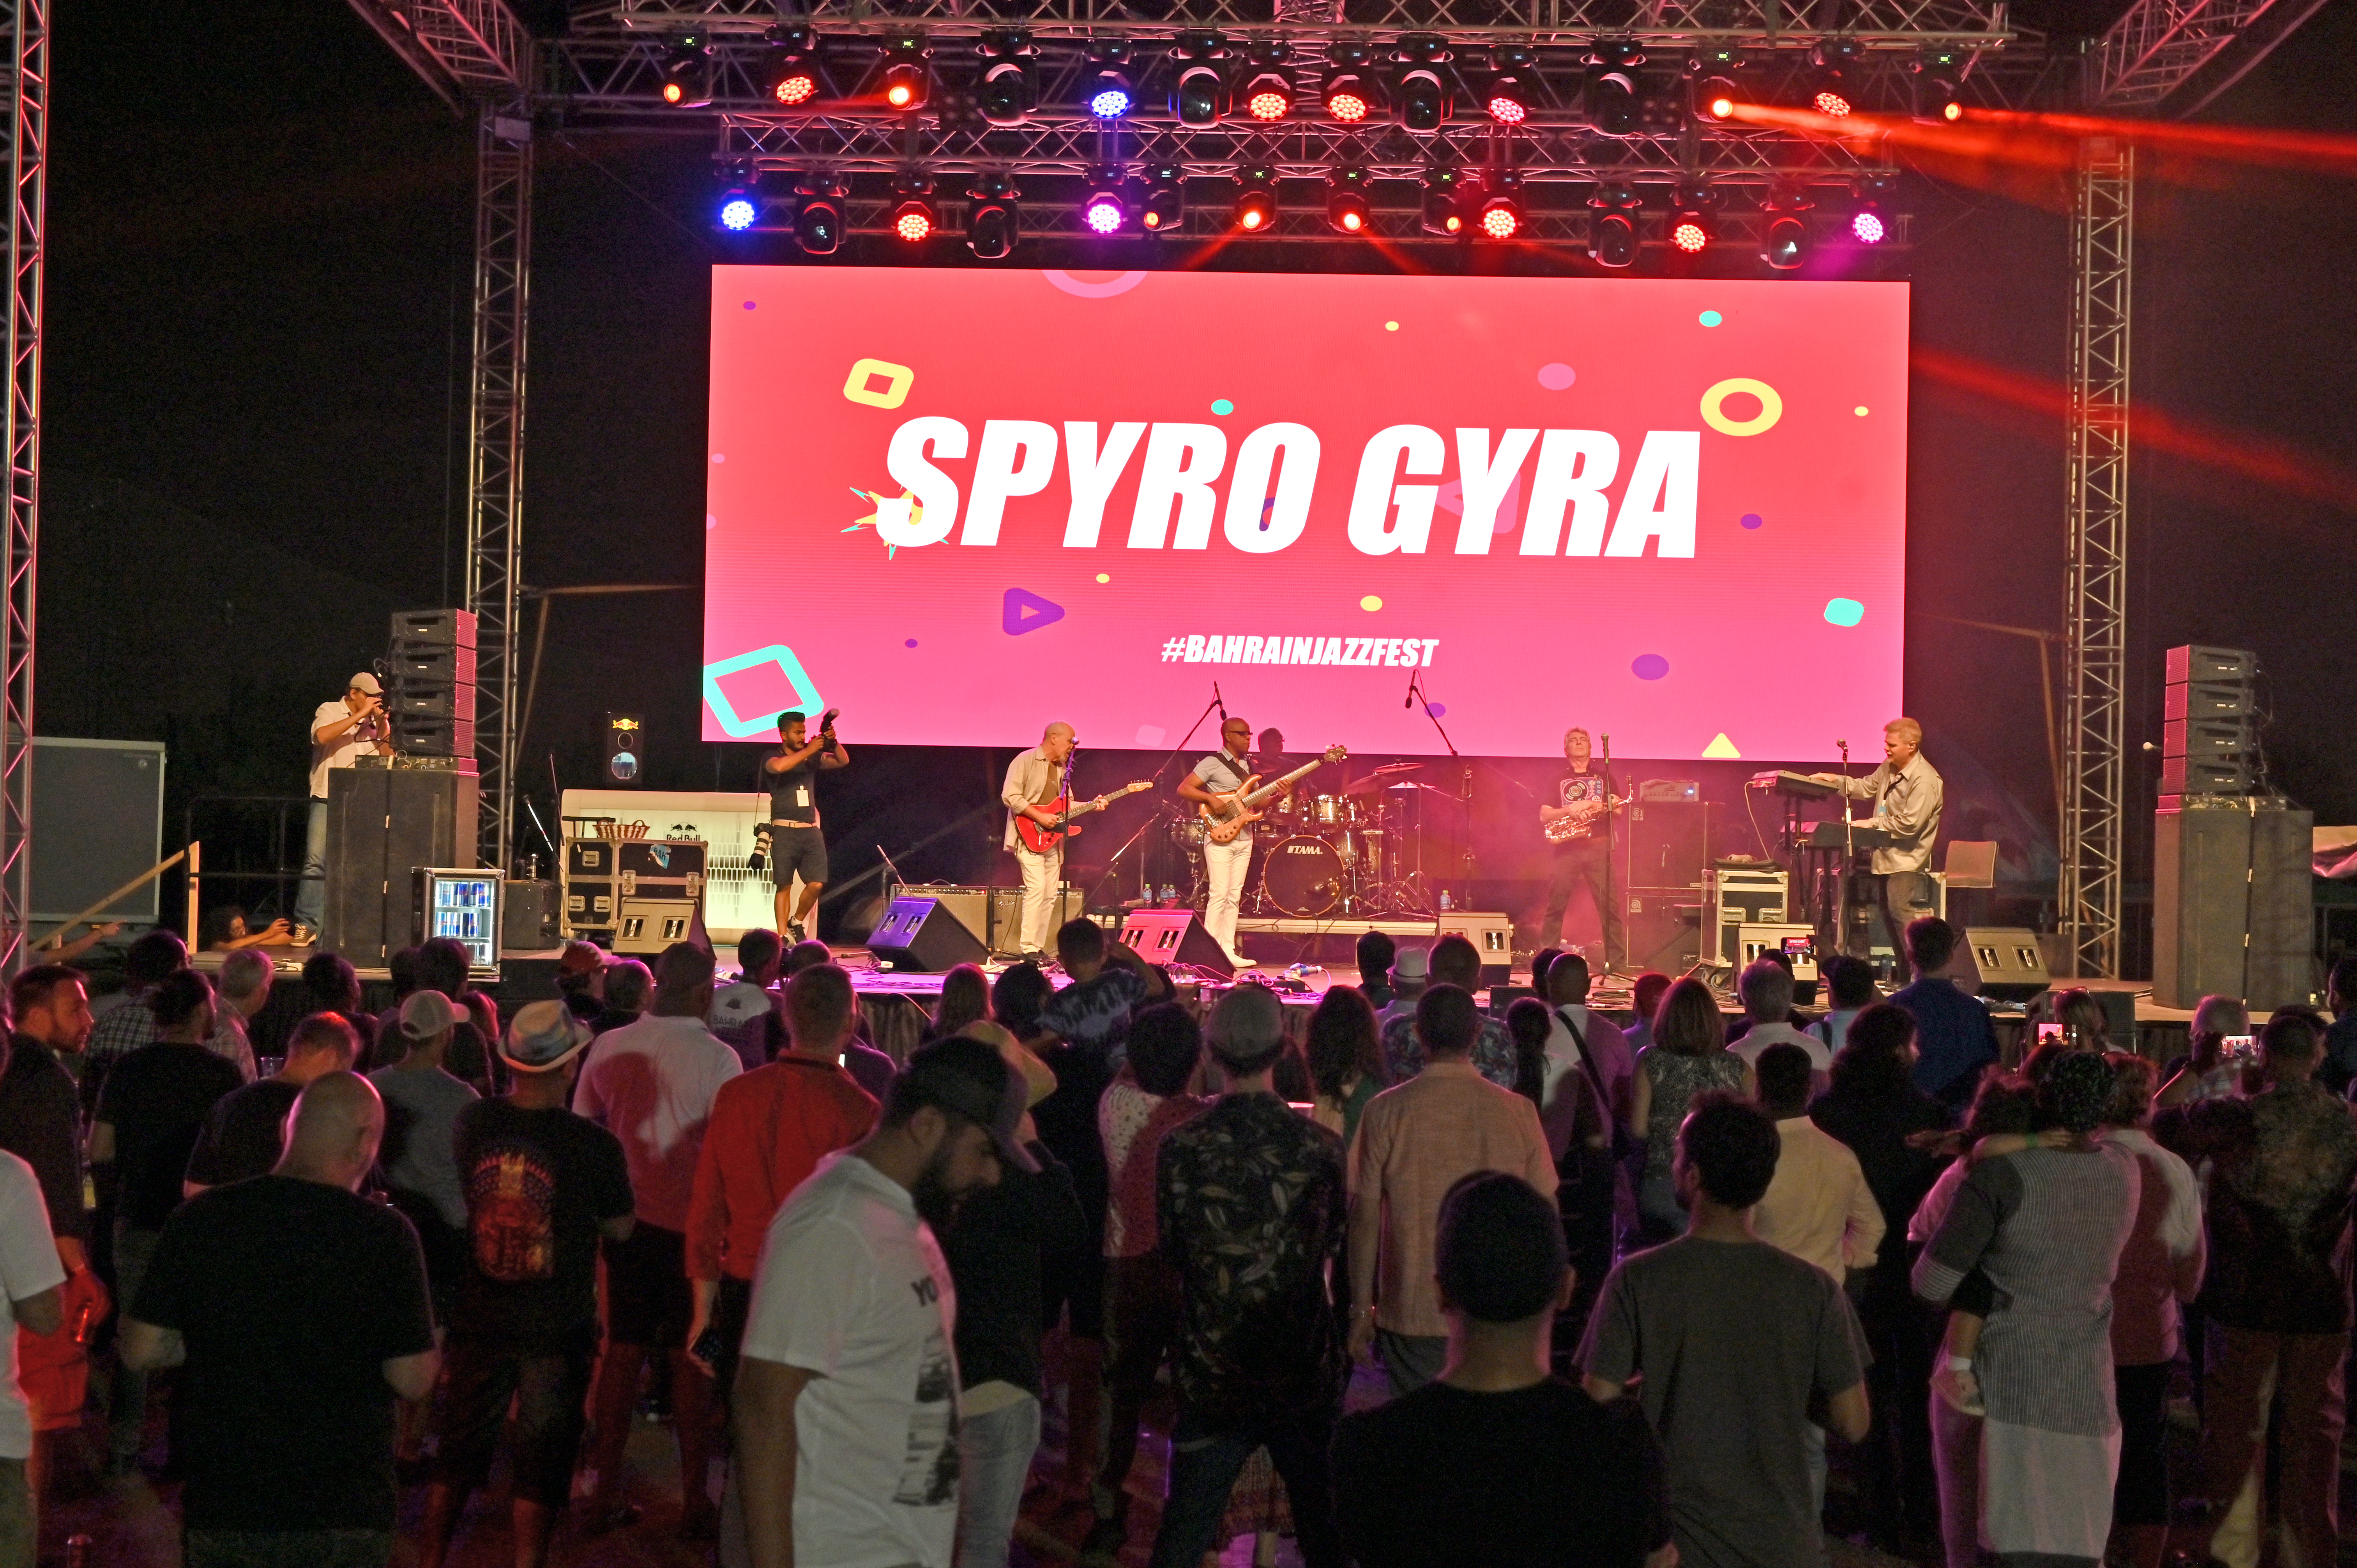 Gulf Weekly Spyro Gyra a cult band